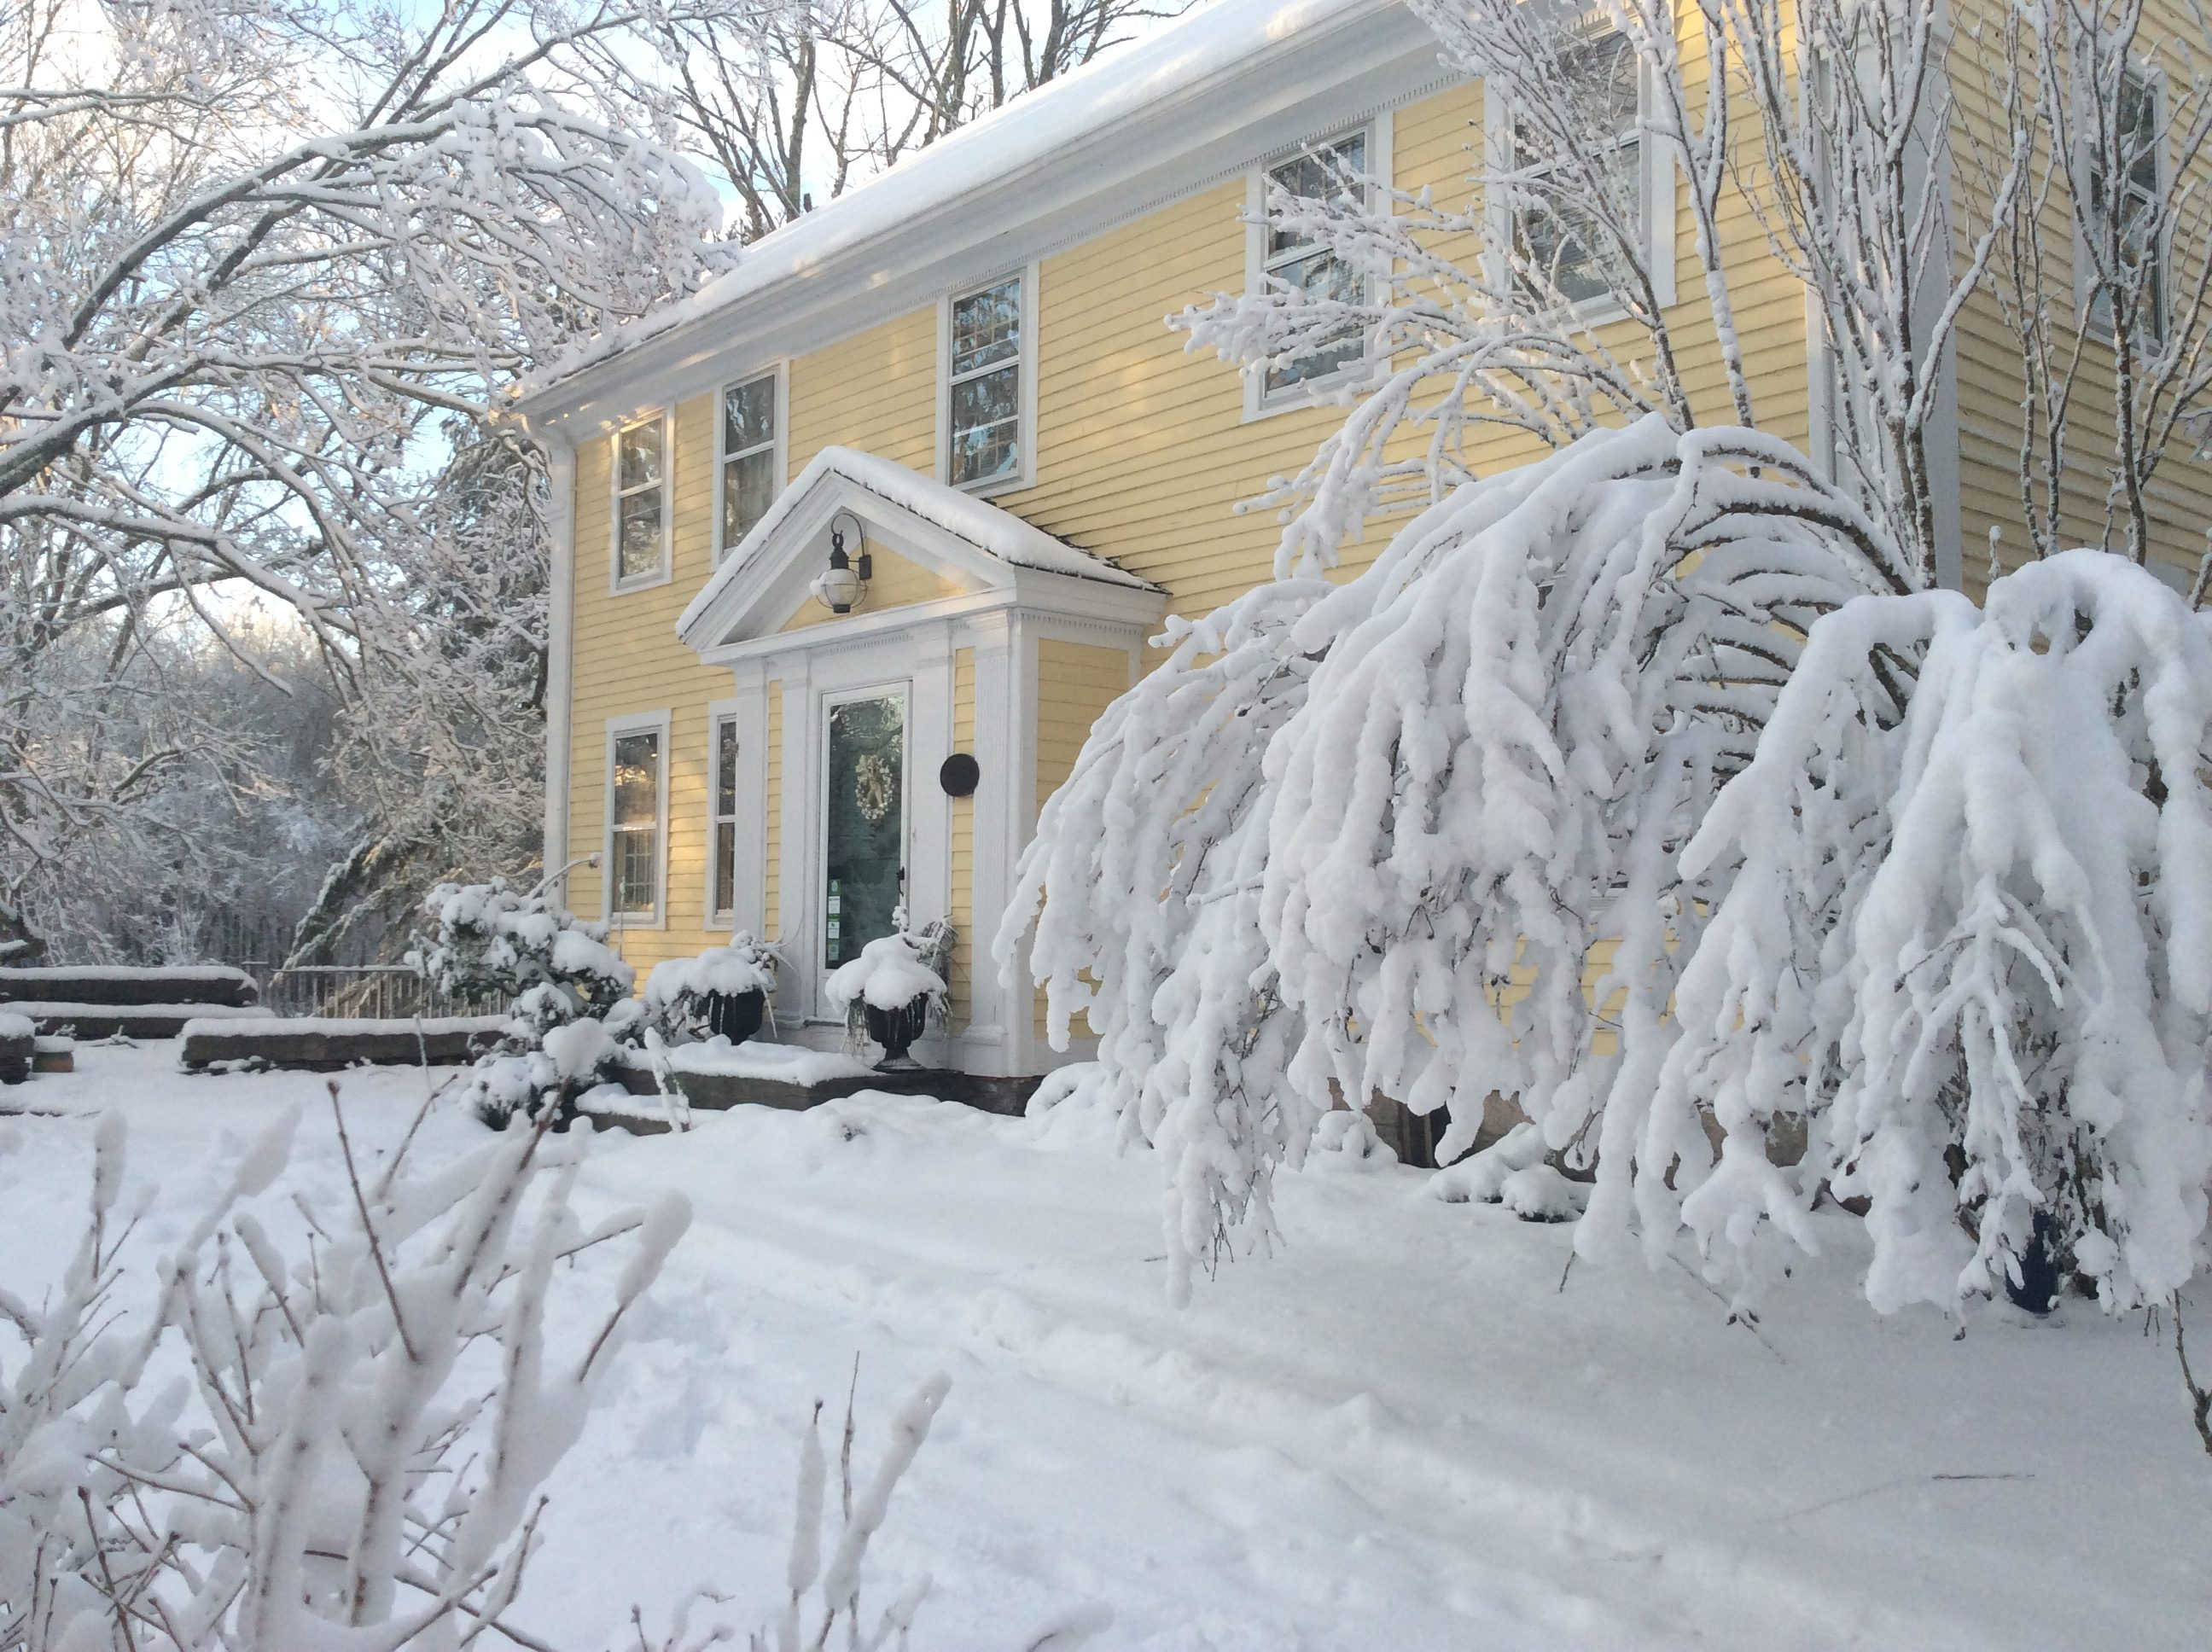 Staying in Stonecroft is one of things to do in Mystic CT in winter